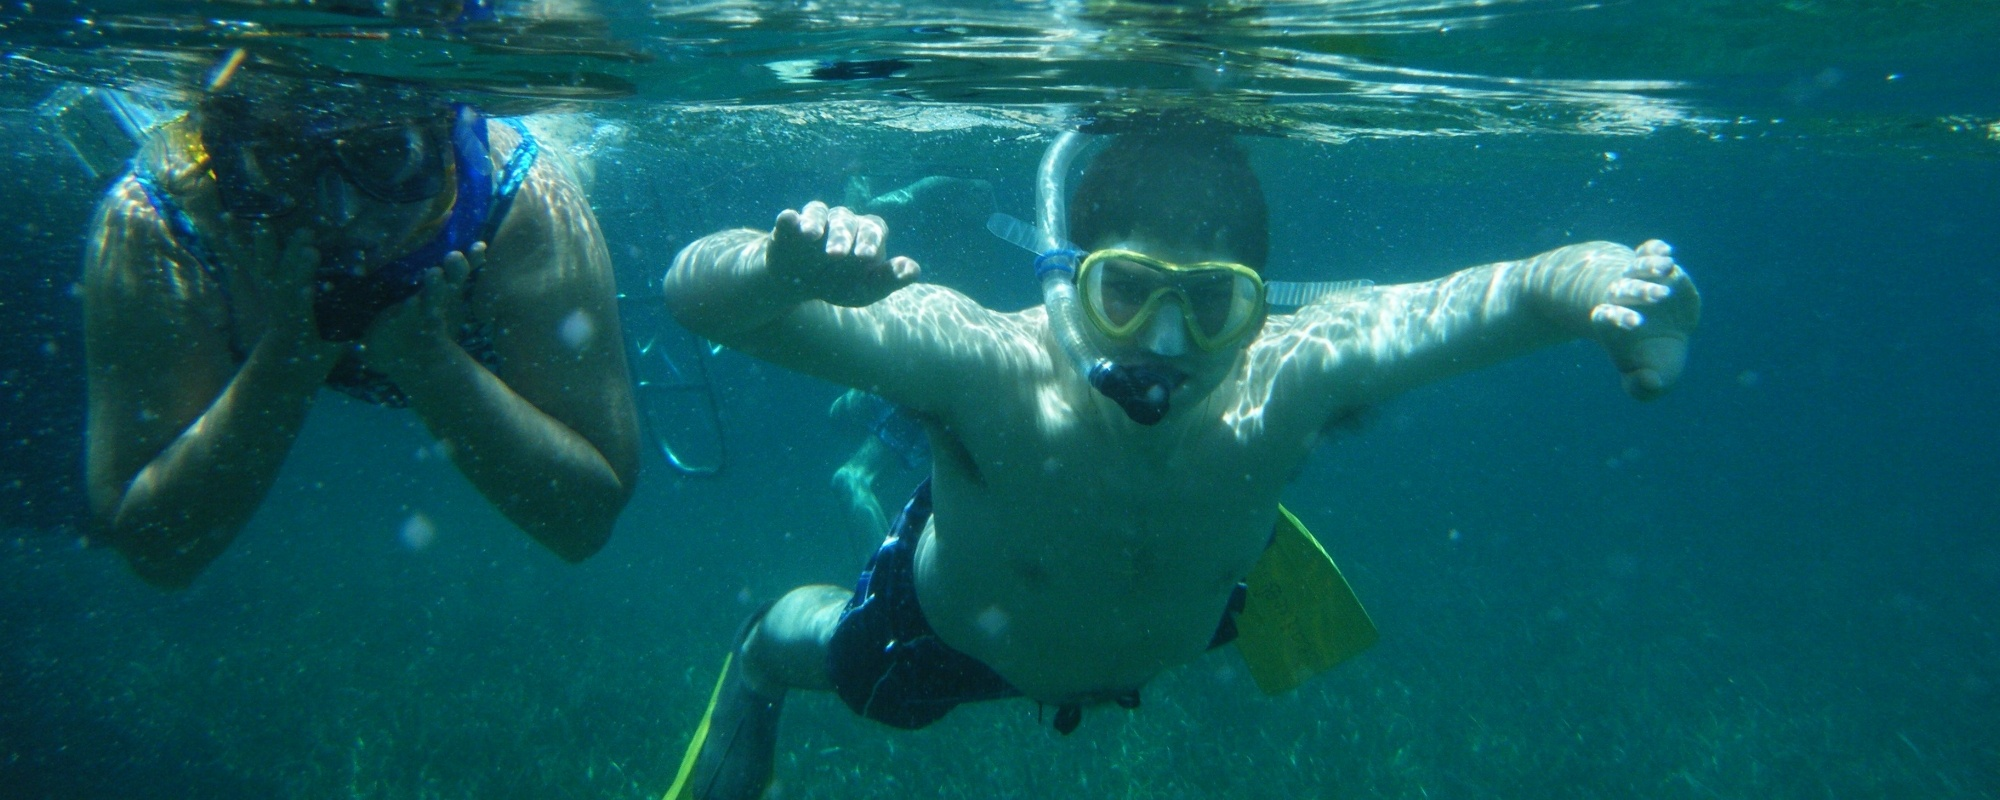 Snorkeling In Belize